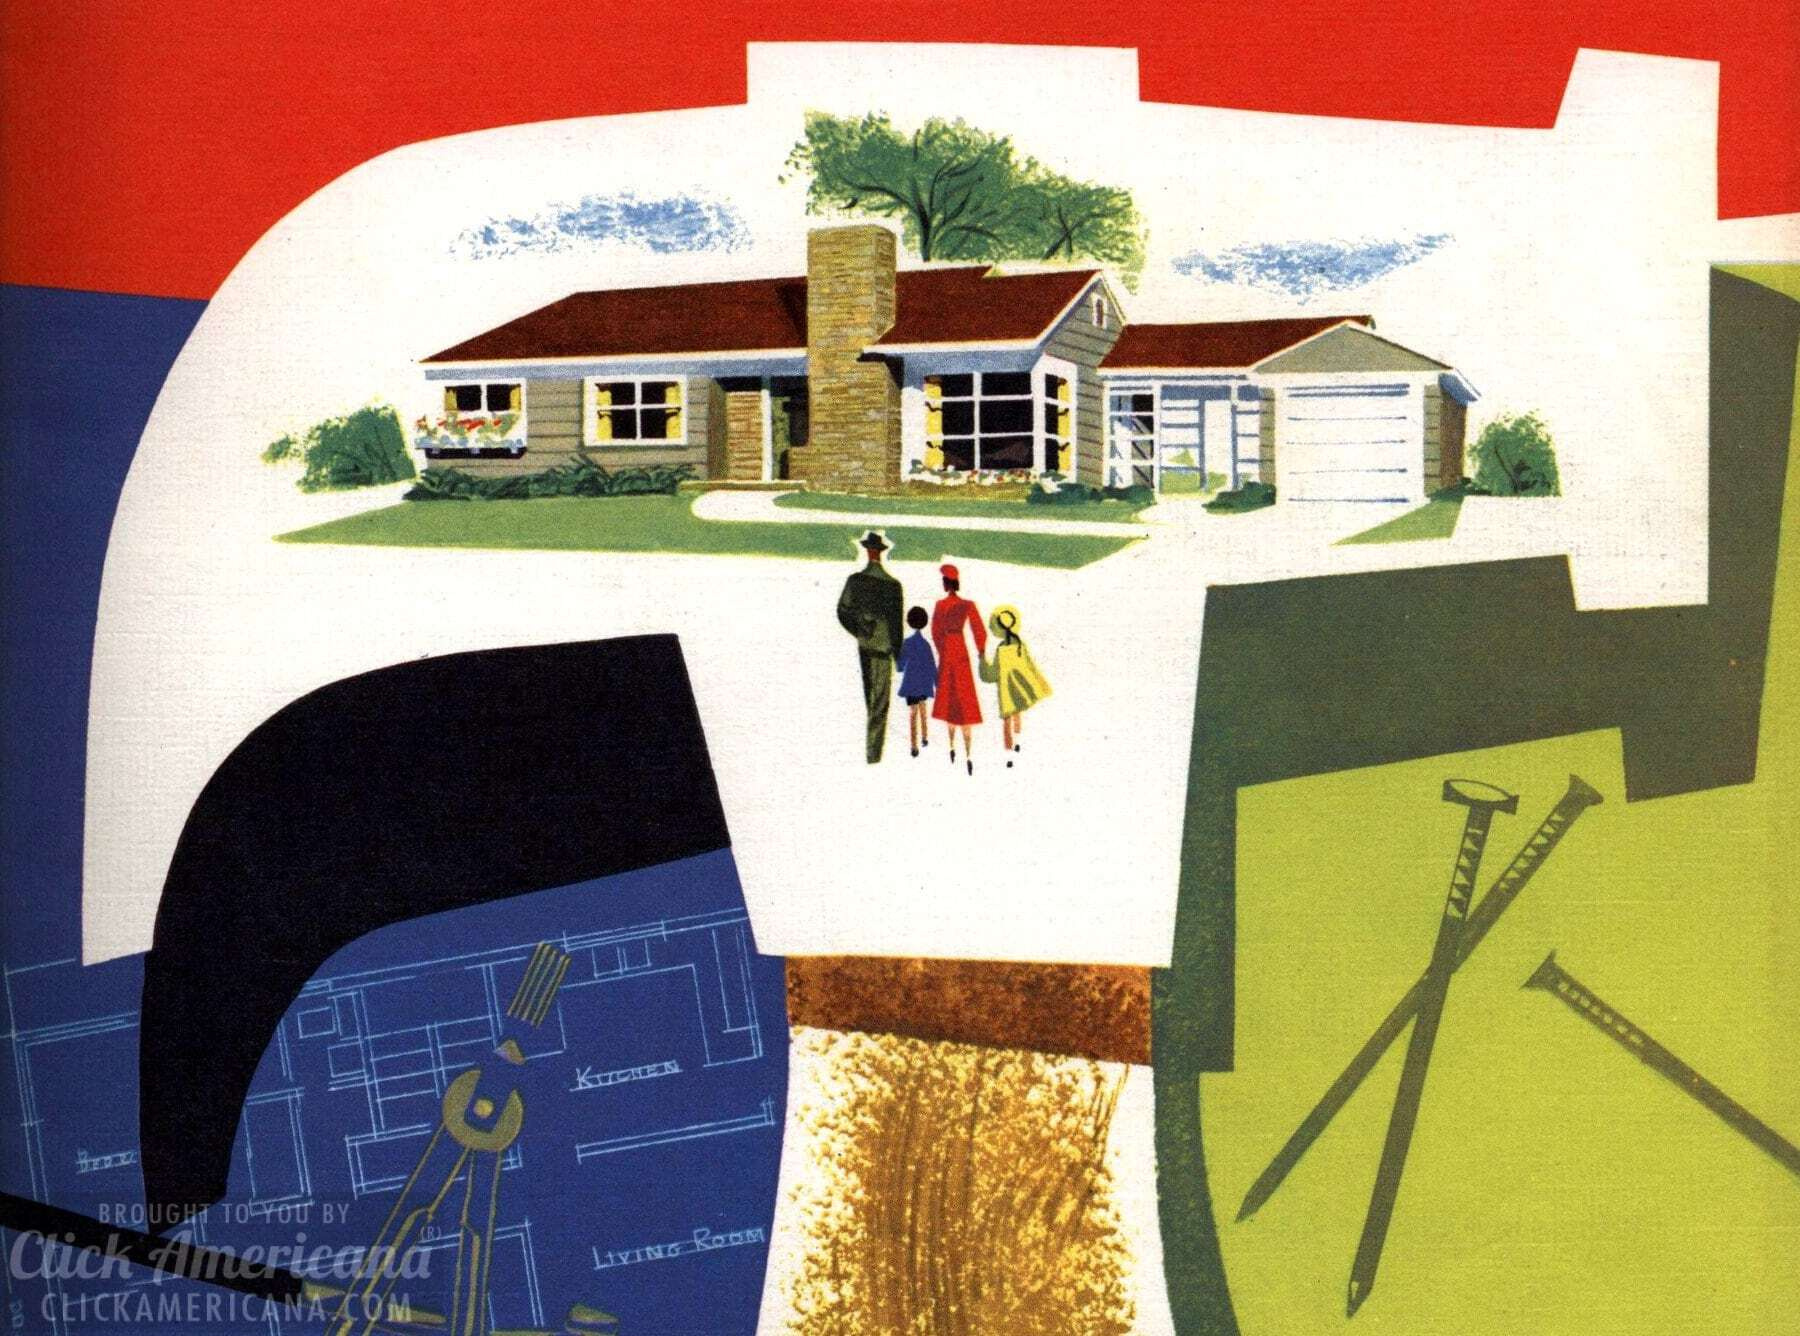 See 130 vintage '50s house plans used to build millions of ... Wild Turkey House Plan on barn swallow house, ruff house, downy woodpecker house, chicken house, ostrich house, rabbit house, red-bellied woodpecker house, eastern bluebird house, muskrat house, mountain lion house, barred owl house, groundhog house, tree swallow house, eastern screech owl house, black-capped chickadee house, bobcat house, goose house, wild horse house, wood duck house, raccoon house,